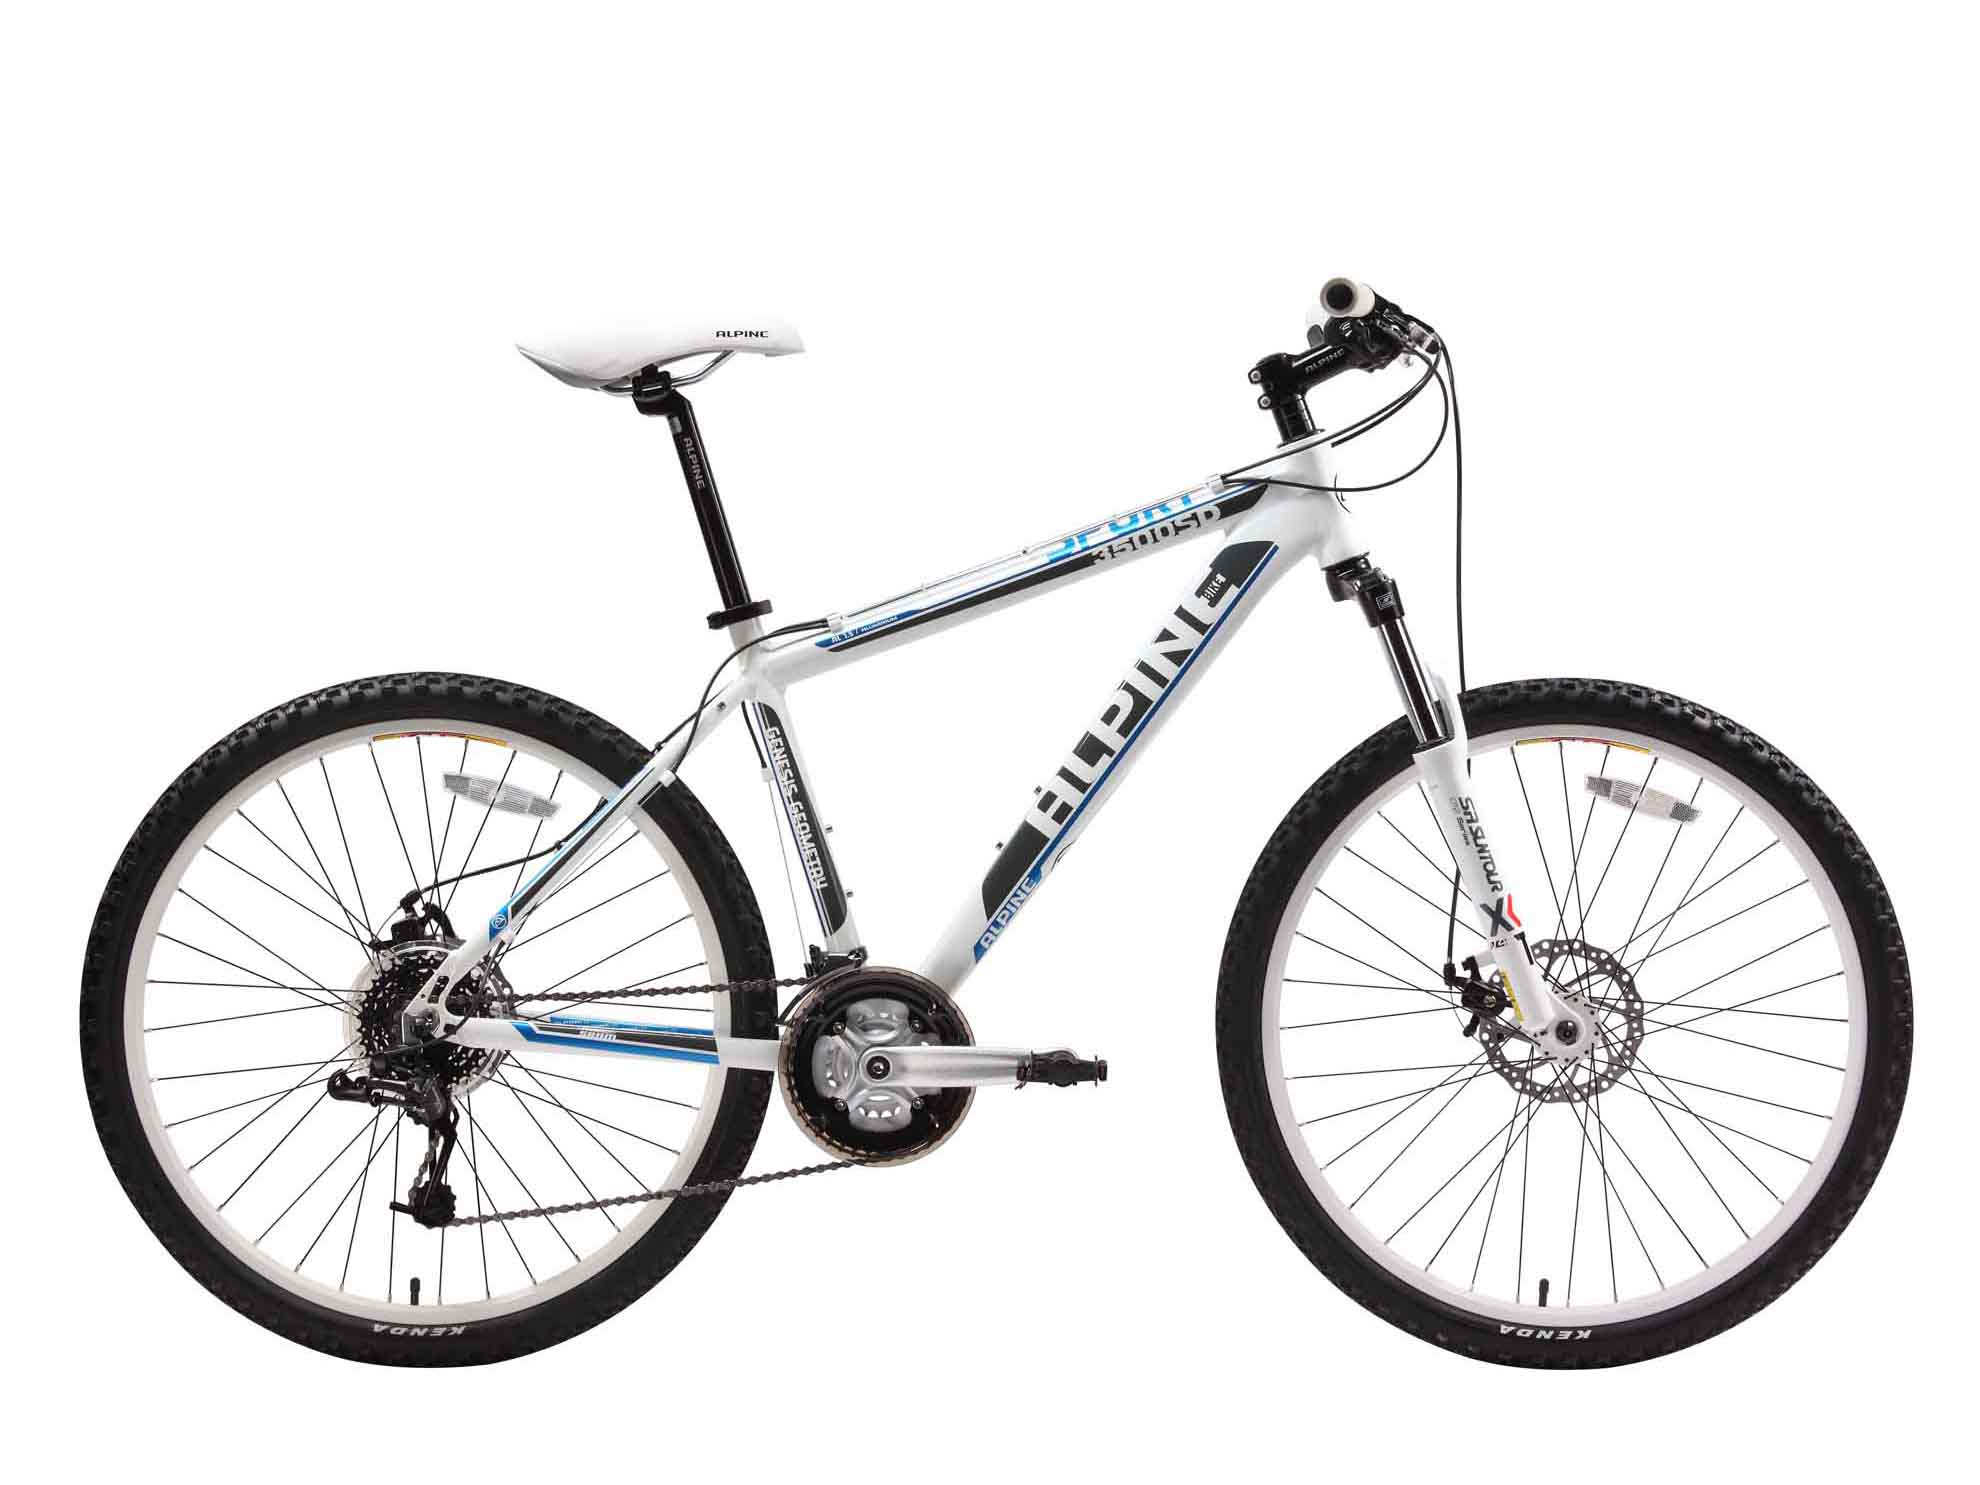 Alpine Bike 3500SD Luxury